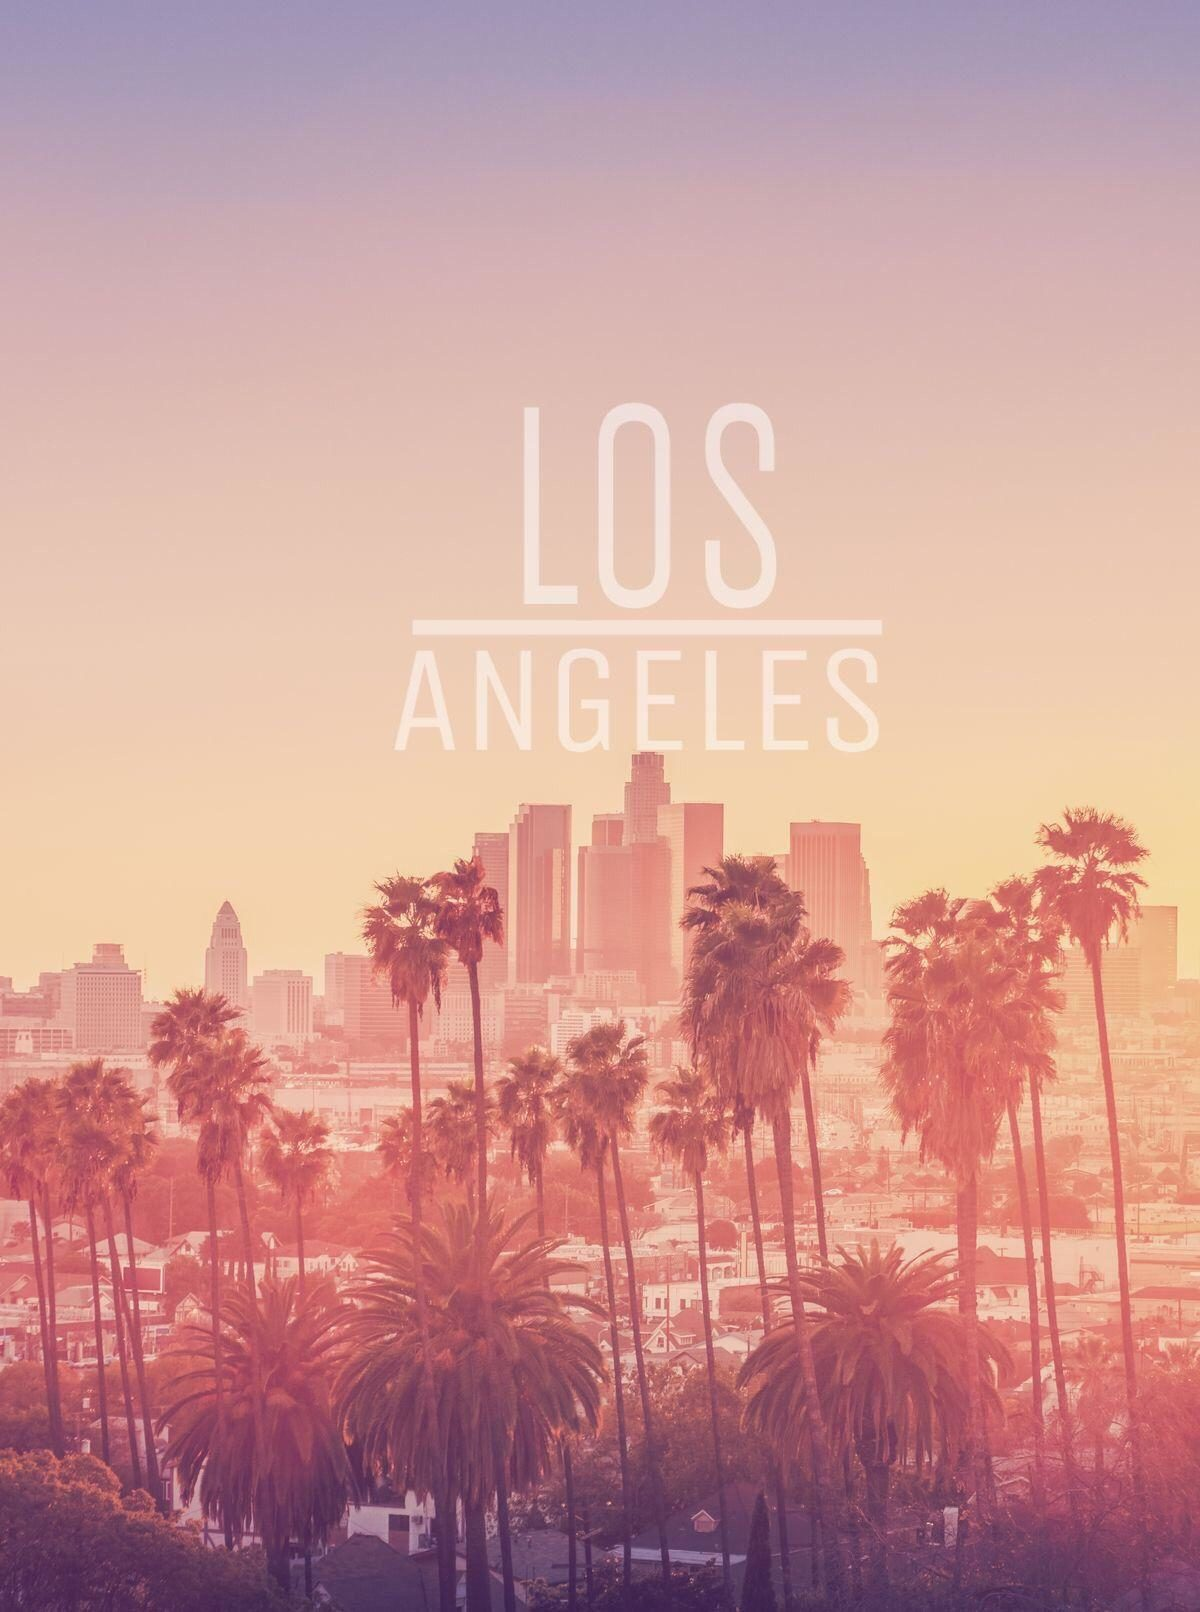 Los angeles wallpaper, Los angeles and Angeles on Pinterest